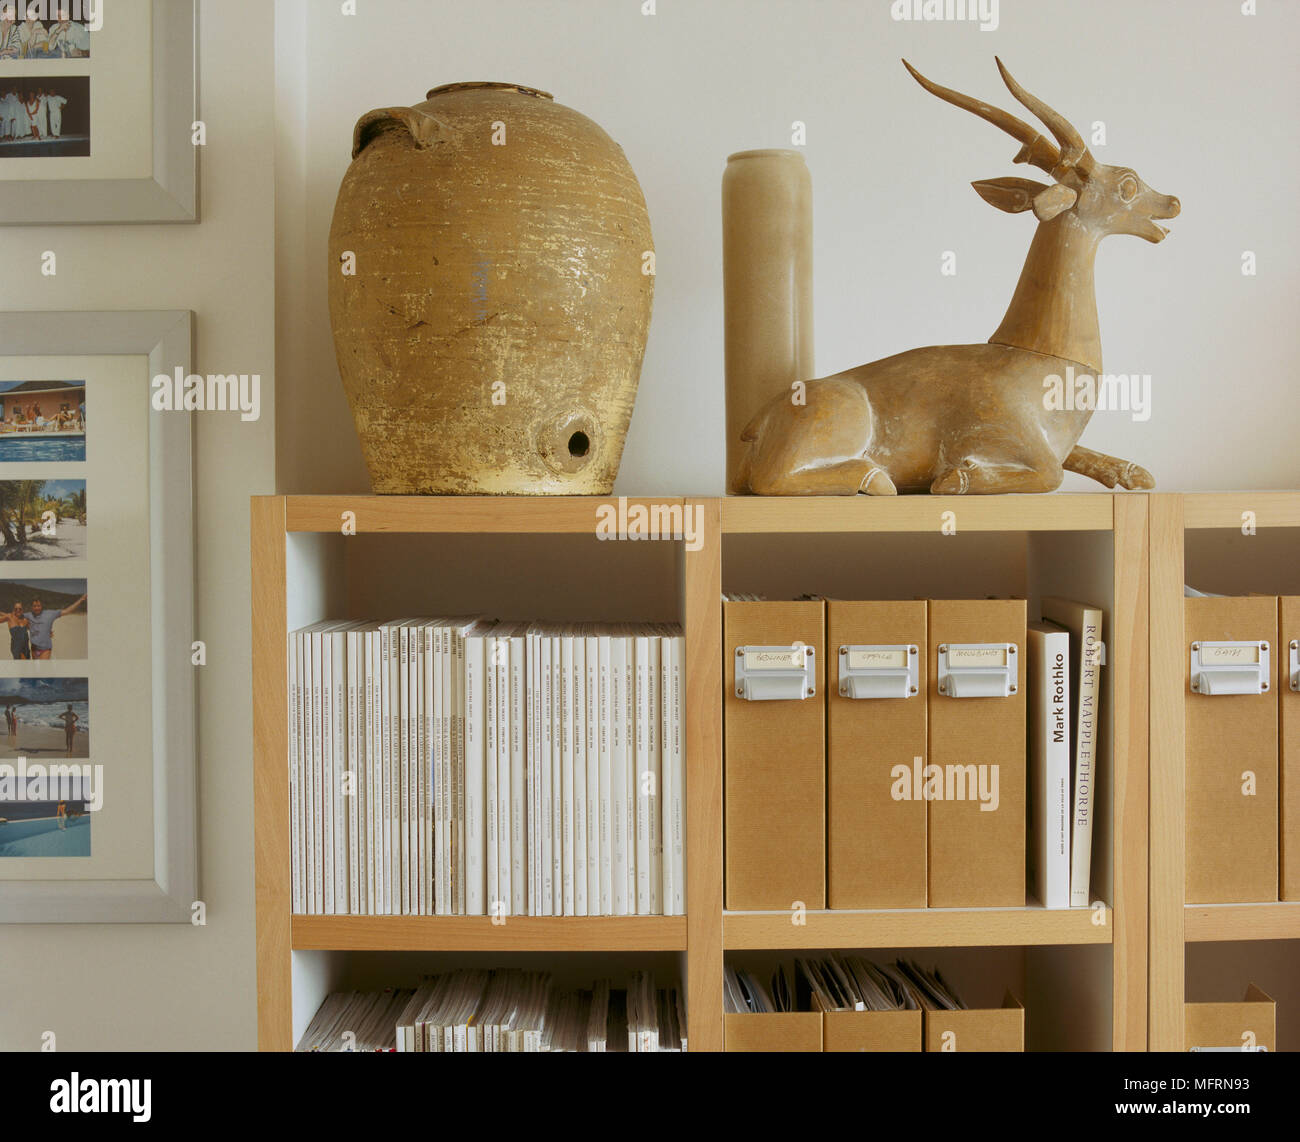 home office shelving units. A Detail Of Home Office Shelving Unit Storing Magazines And Box Files Pottery Vases Animal Figurine Units N